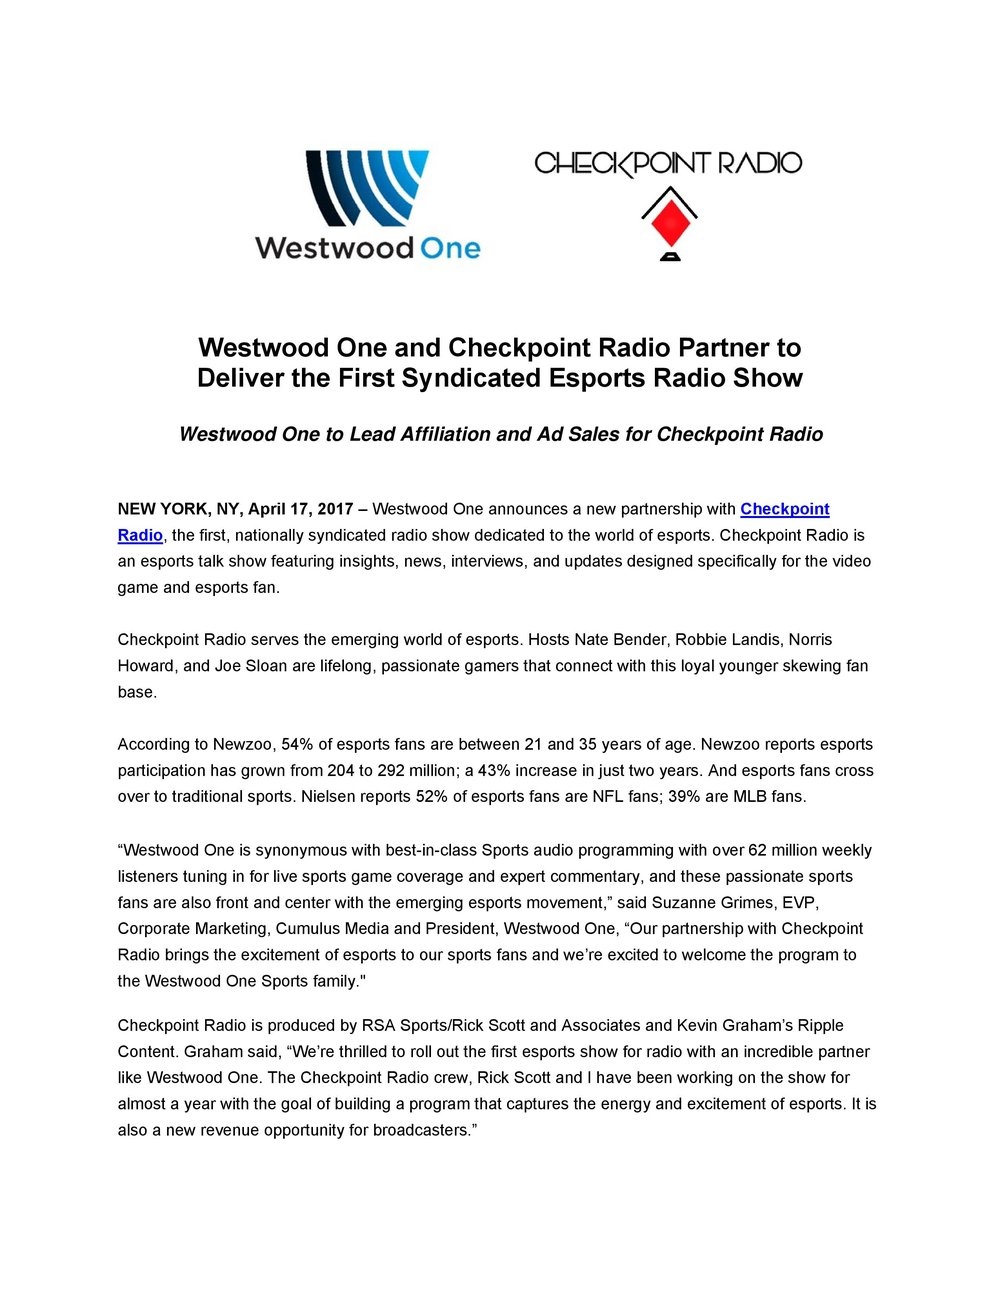 PR-Checkpoint Radio-FINAL-4172017-page-001.jpg